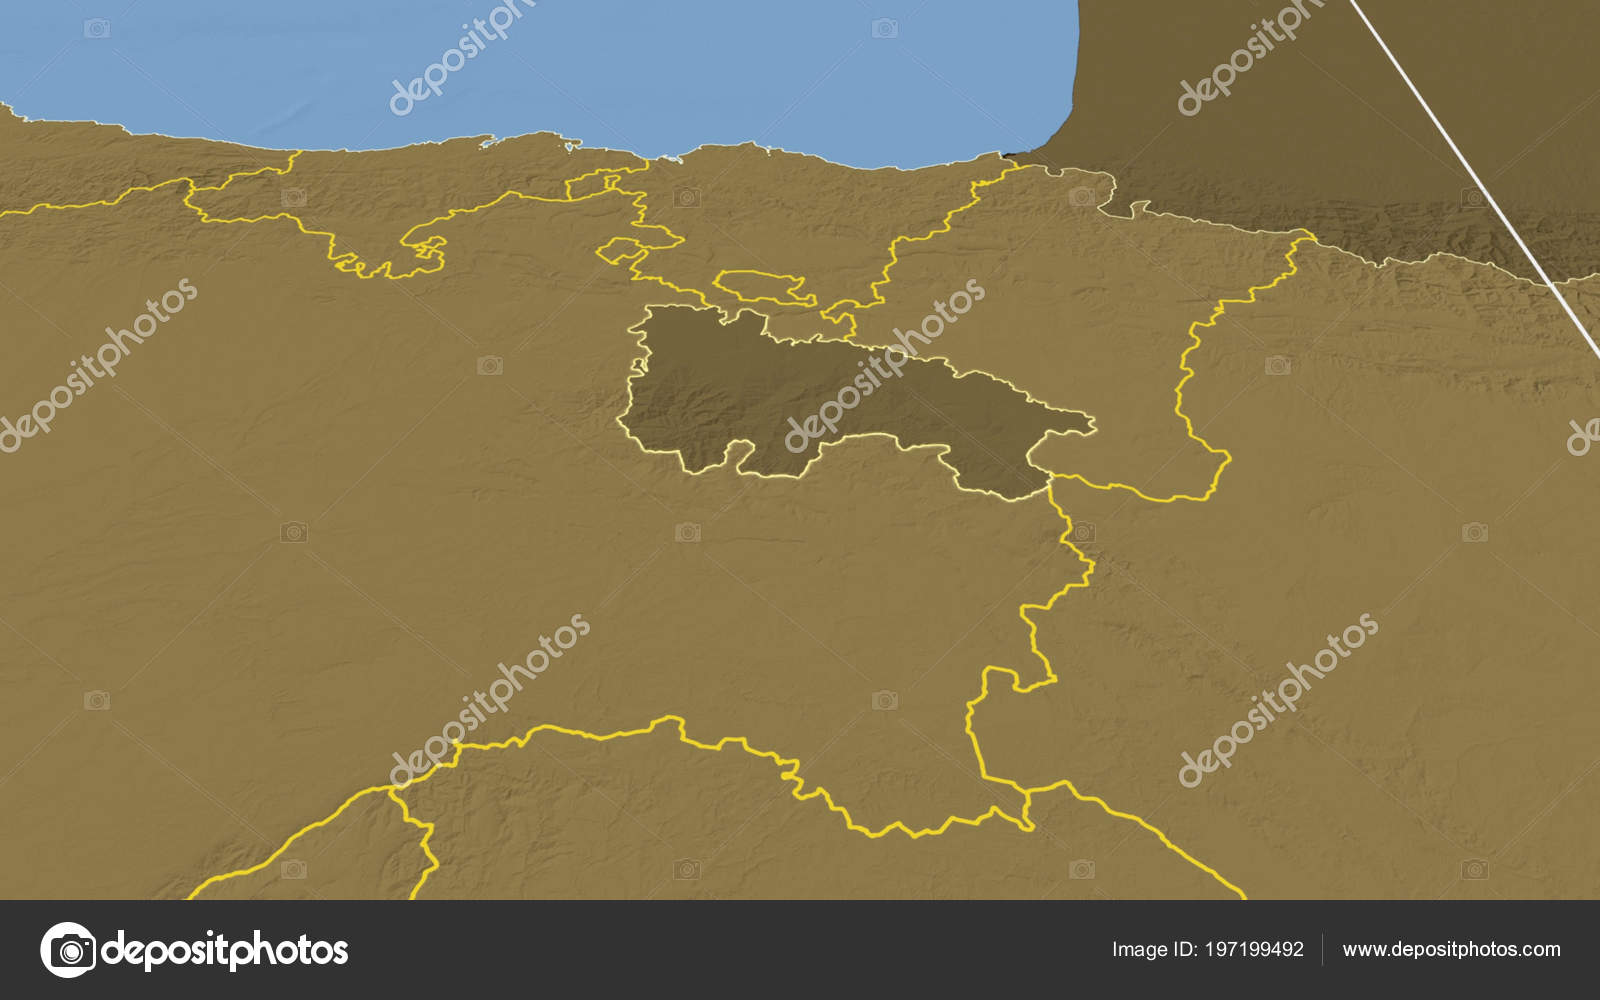 Rioja Region Spain Map.Rioja Region Spain Outlined Bilevel Elevation Map Stock Photo